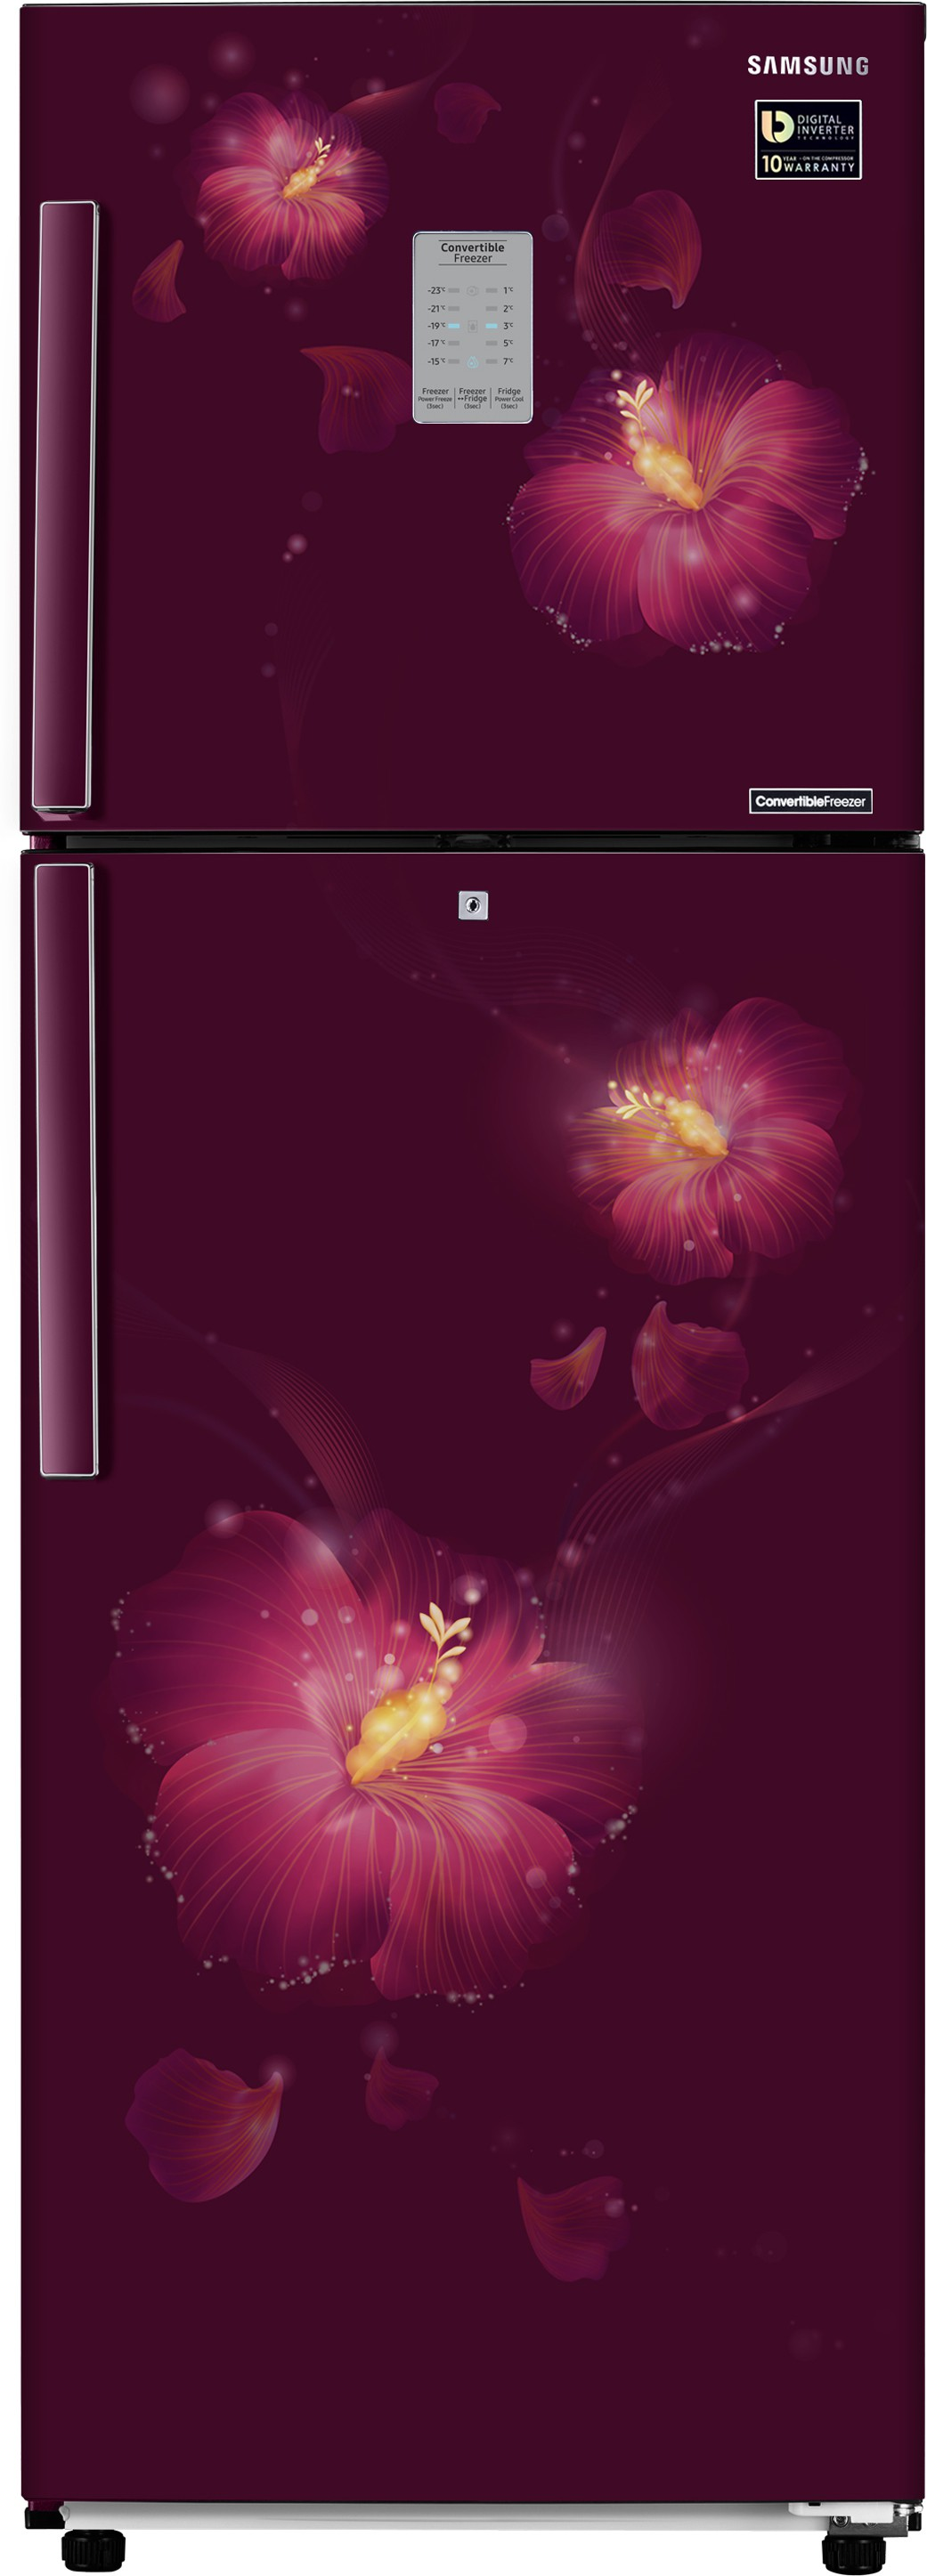 Samsung 253 L Frost Free Double Door Refrigerator(RT28M3954R3/NL,RT28M3954R3/HL, Rose Mallow Plum, 2017) (Samsung) Tamil Nadu Buy Online